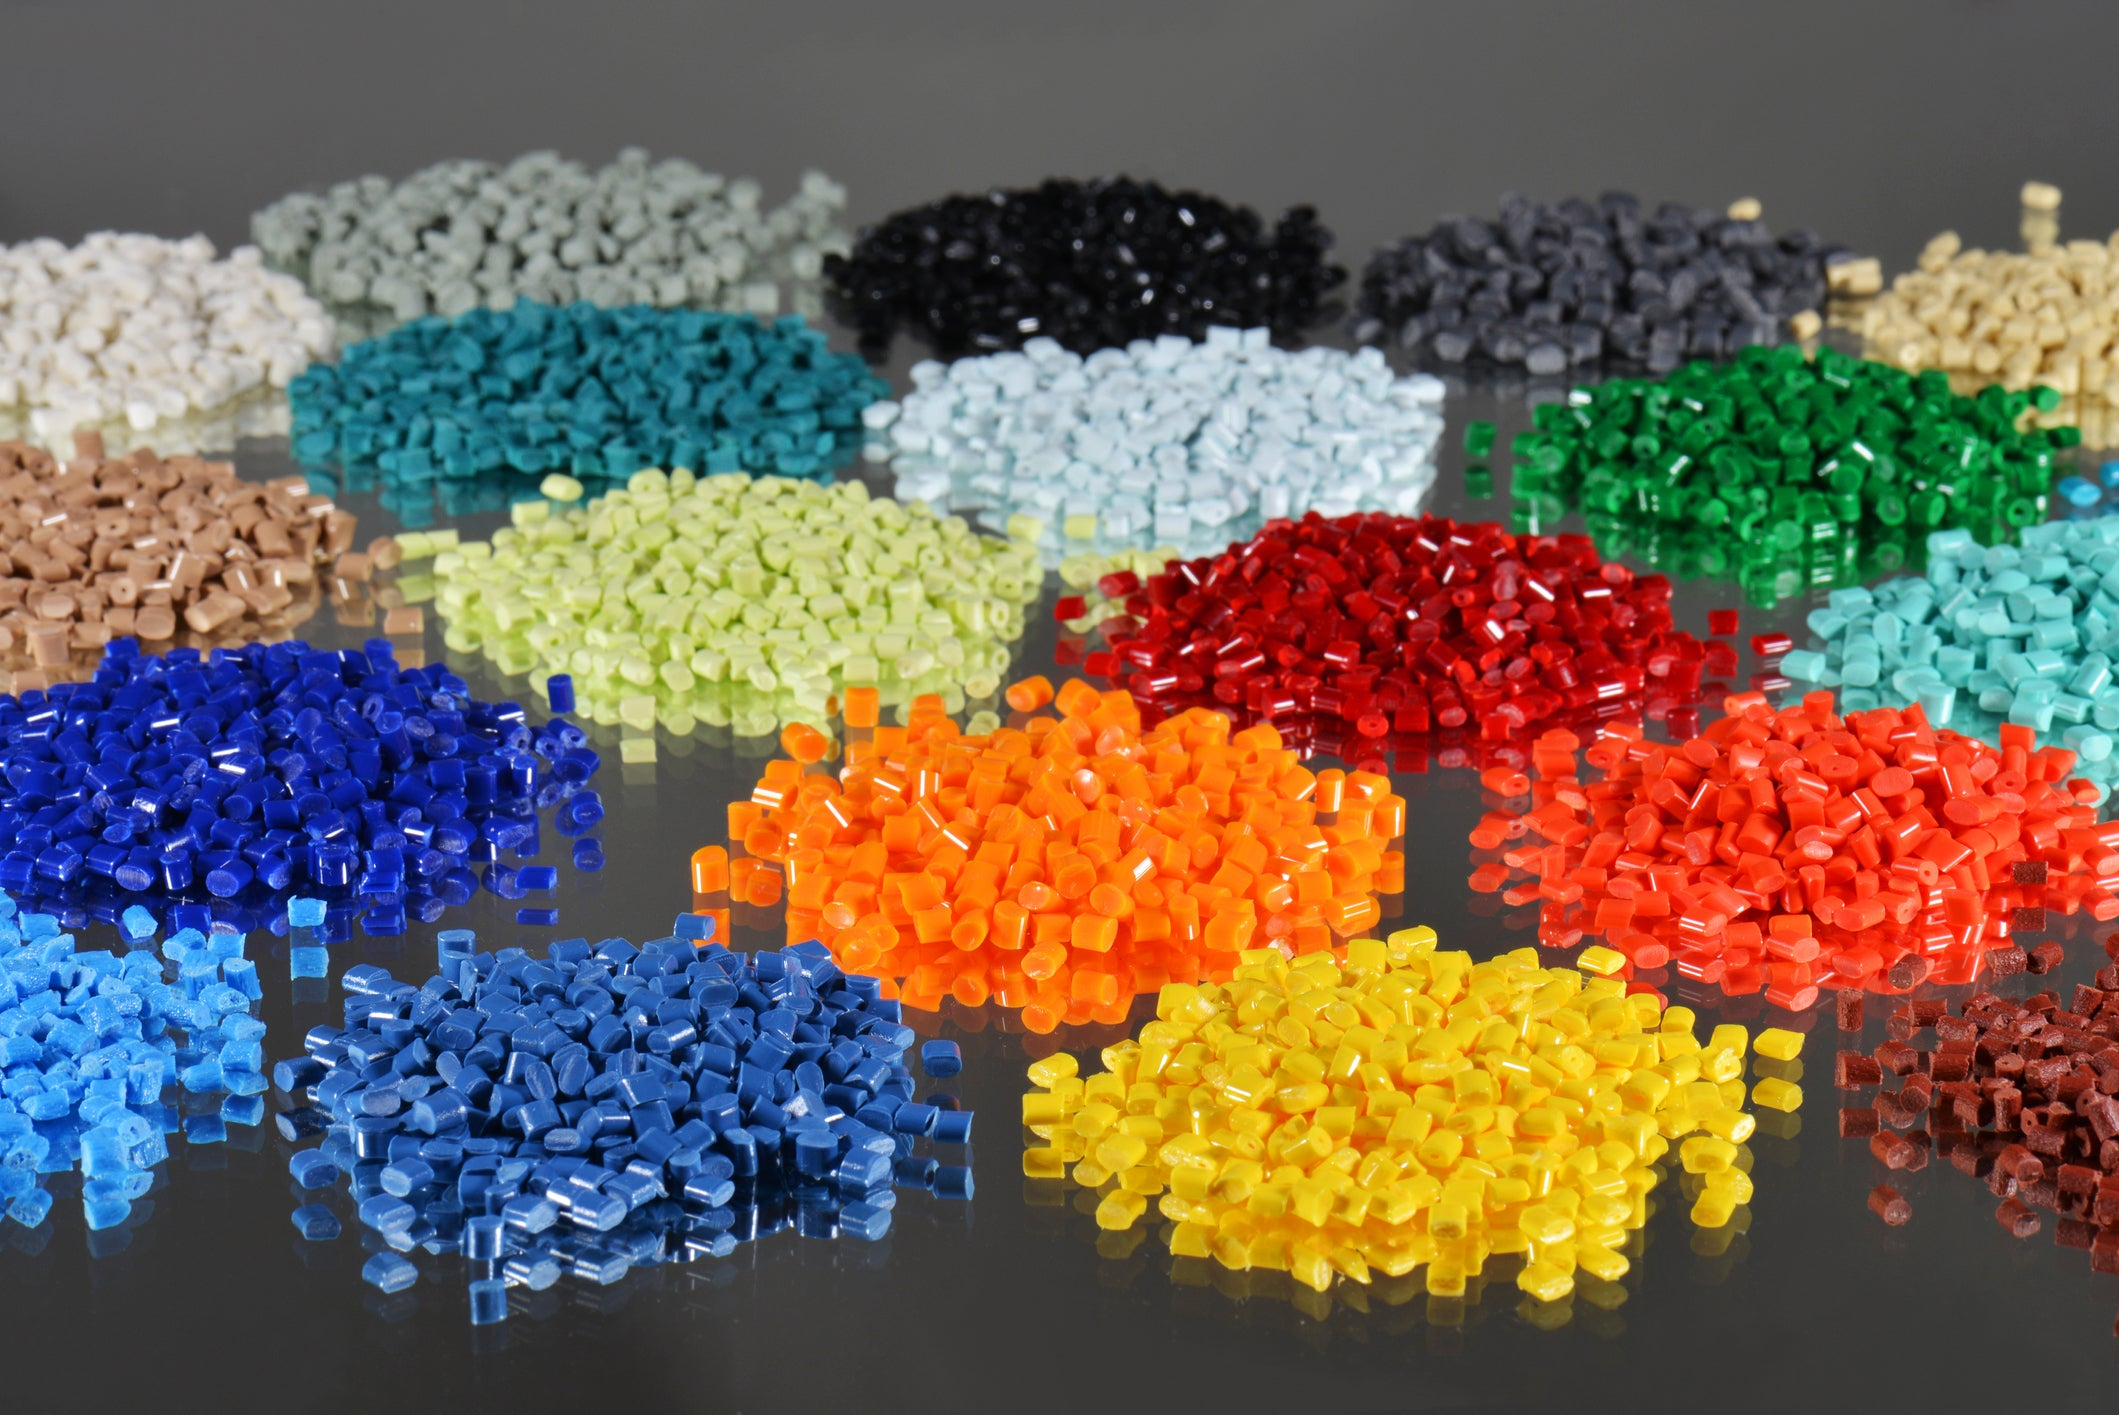 Several dyed polymer resins from the plastic industry on a mirror.